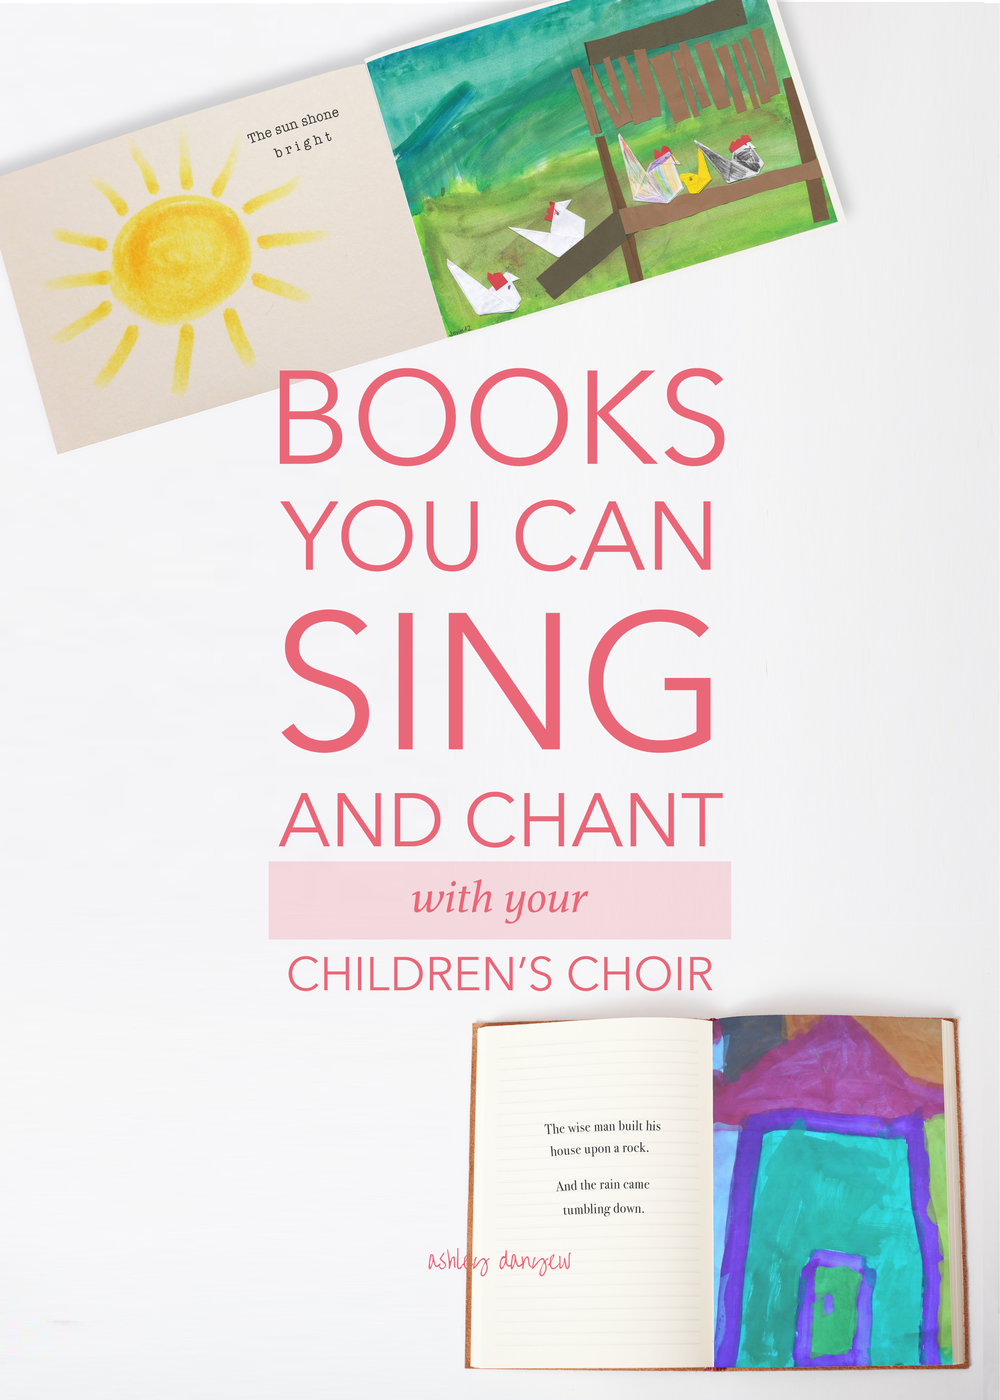 Books You Can Sing and Chant with Your Children's Choir-52.png